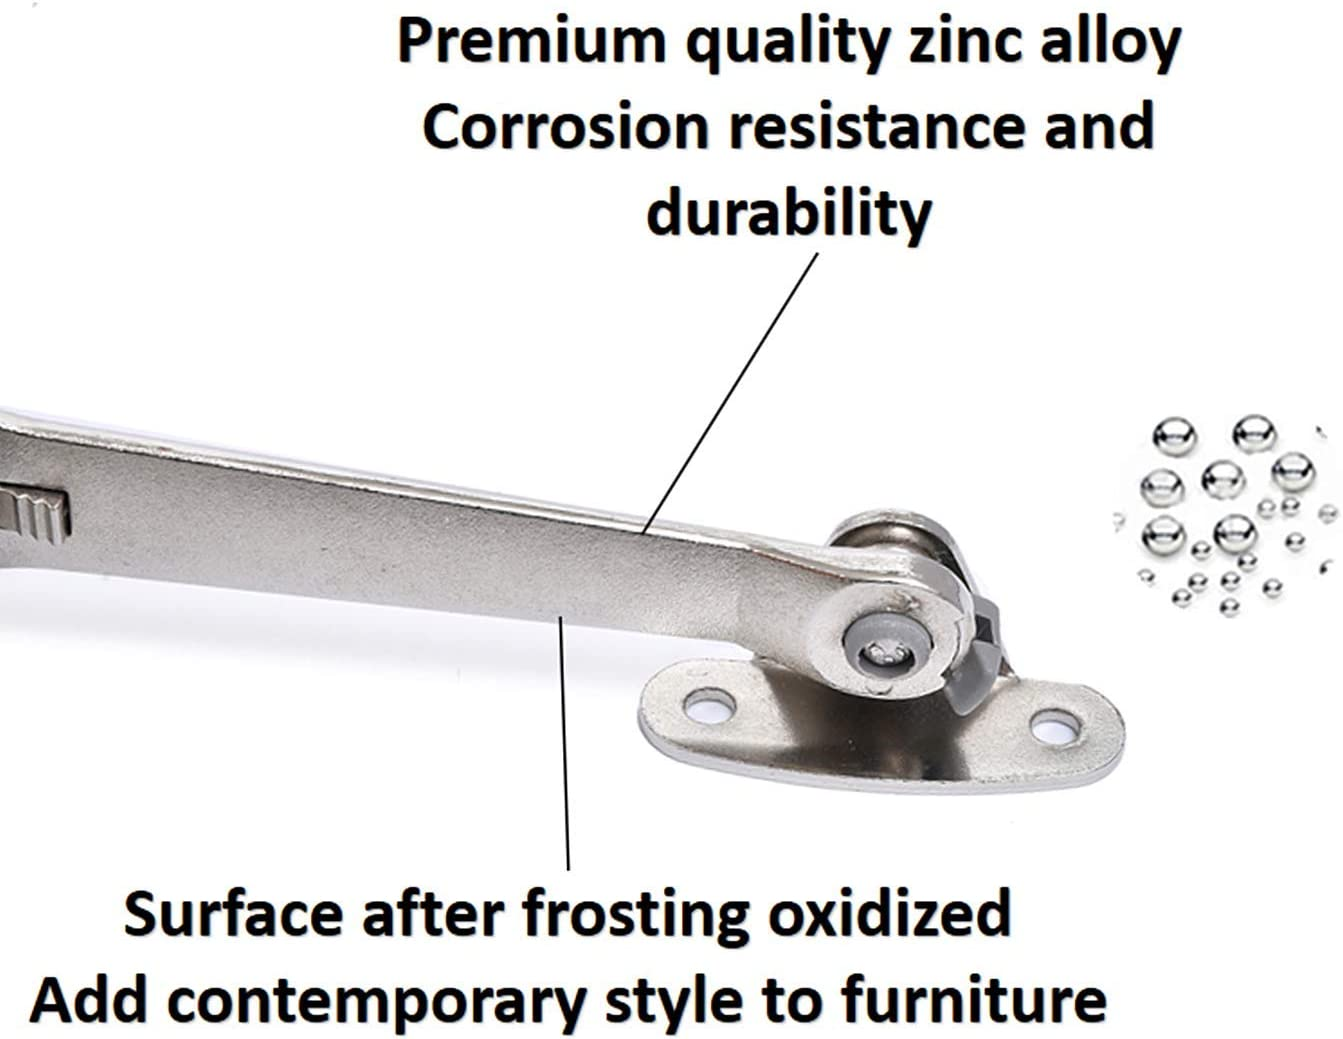 / Modern Style 1pair Perfect for Toy Box//Kitchen//Wardrobe//Cabinet Door 40lb Lid Stay Hinge in Satin Nickel QBOSO Folding Lid Hinge with Soft Close